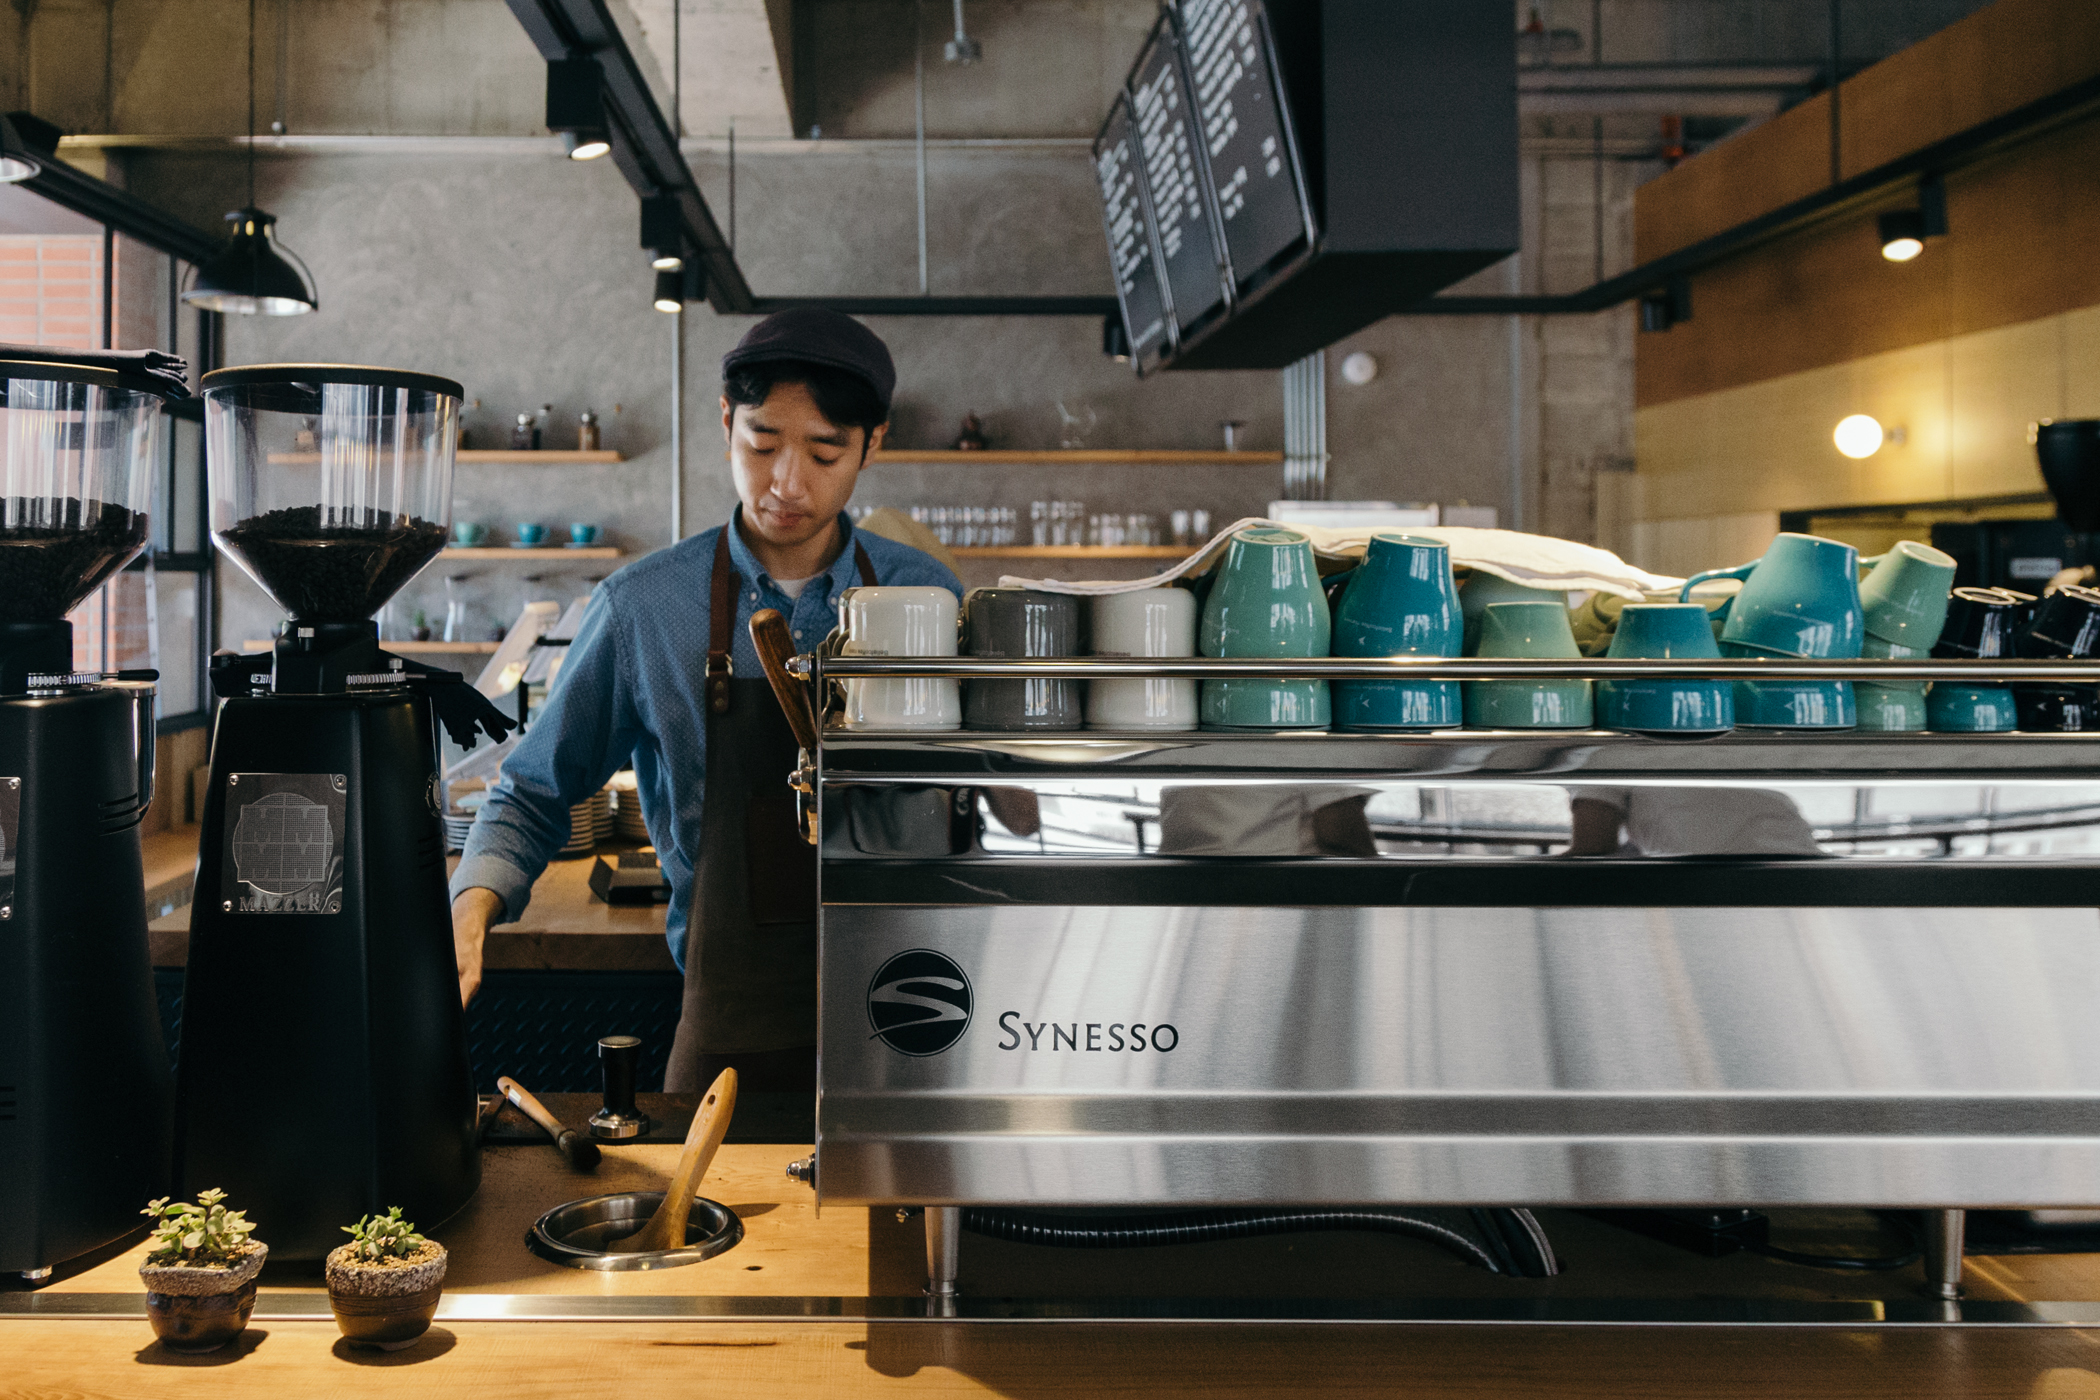 Grey Suitcase Seoul Cafe Series: Beliefcoffee Roasters (빌리프커피 로스터스), Seoul, South Korea.